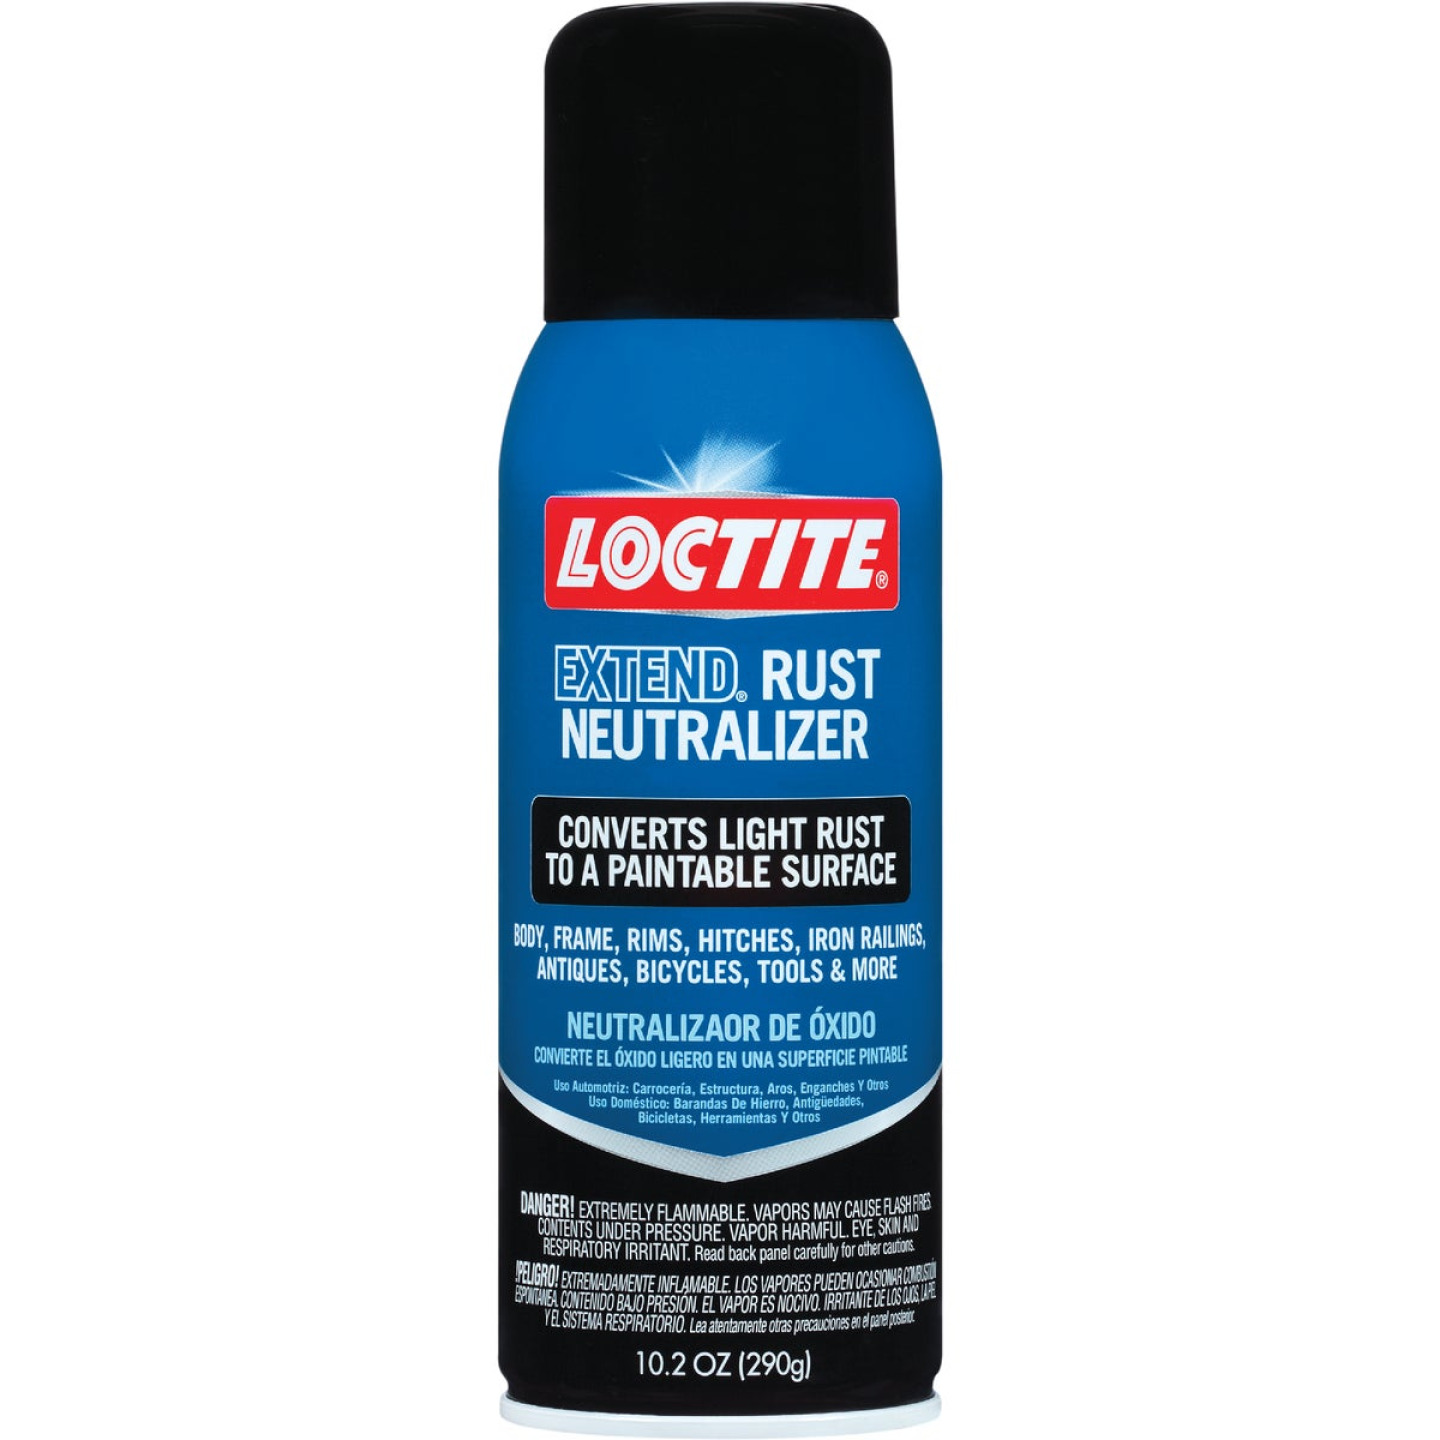 LOCTITE Extend 10.25 Oz. Rust Neutralizer Treatment Image 1